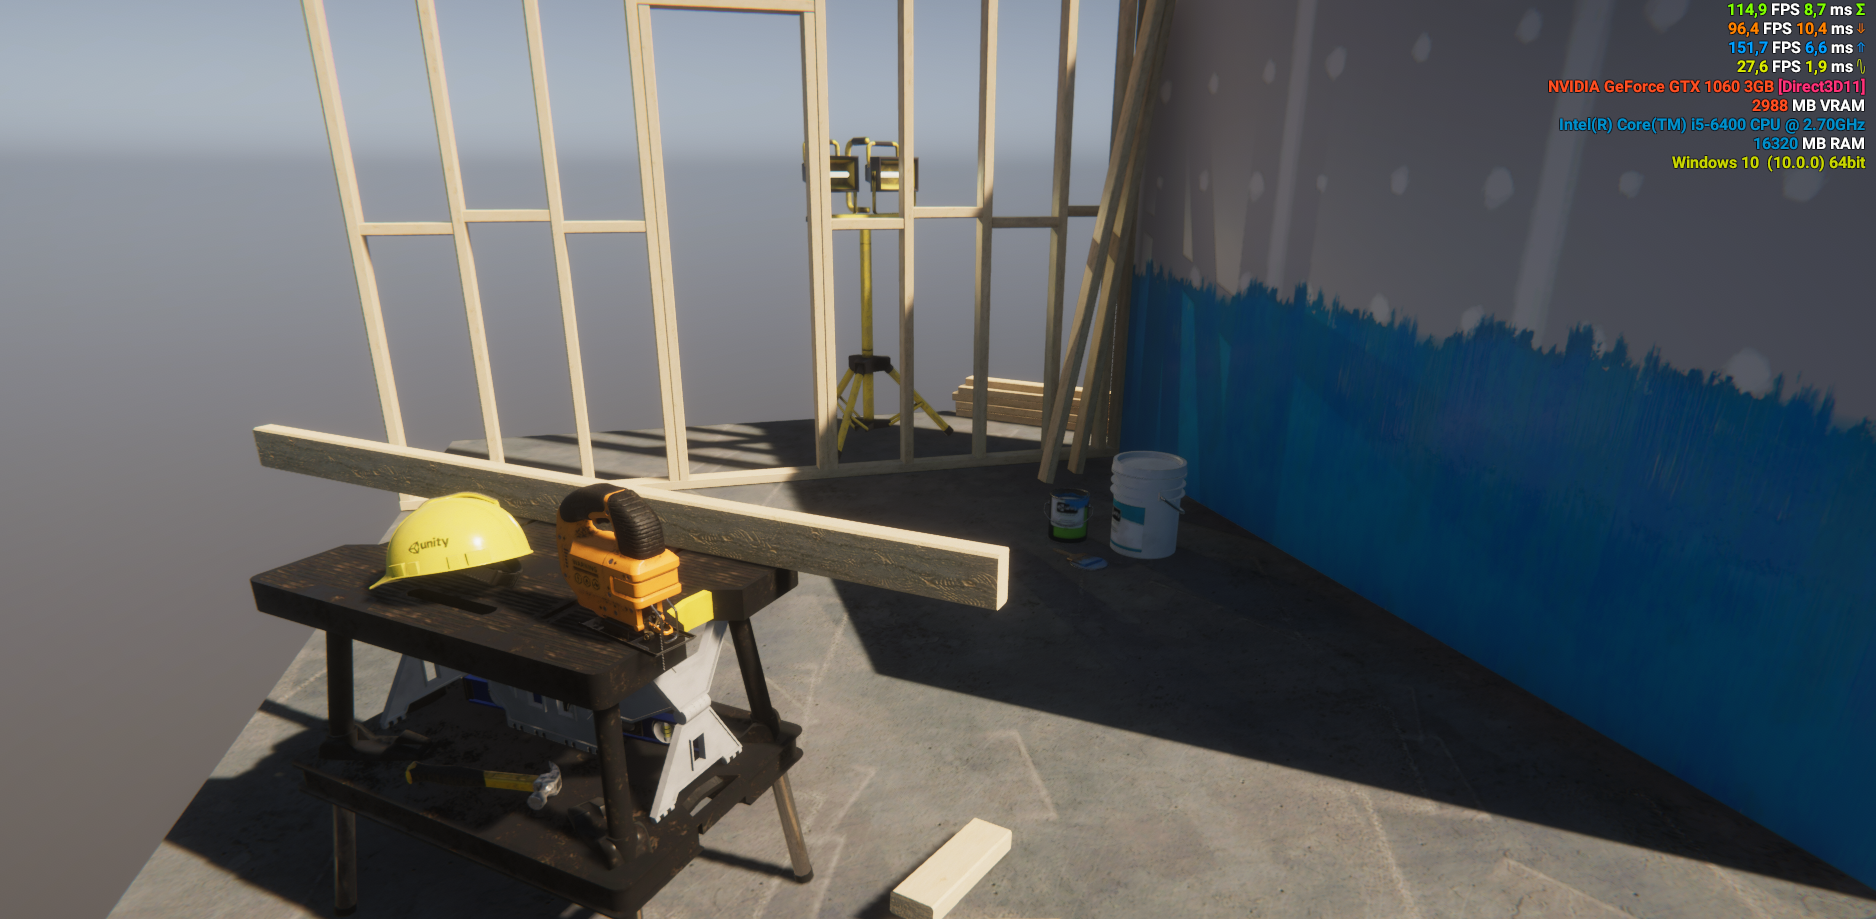 Unity_Test_FPS_Template_HDRP_1920x1080.PNG